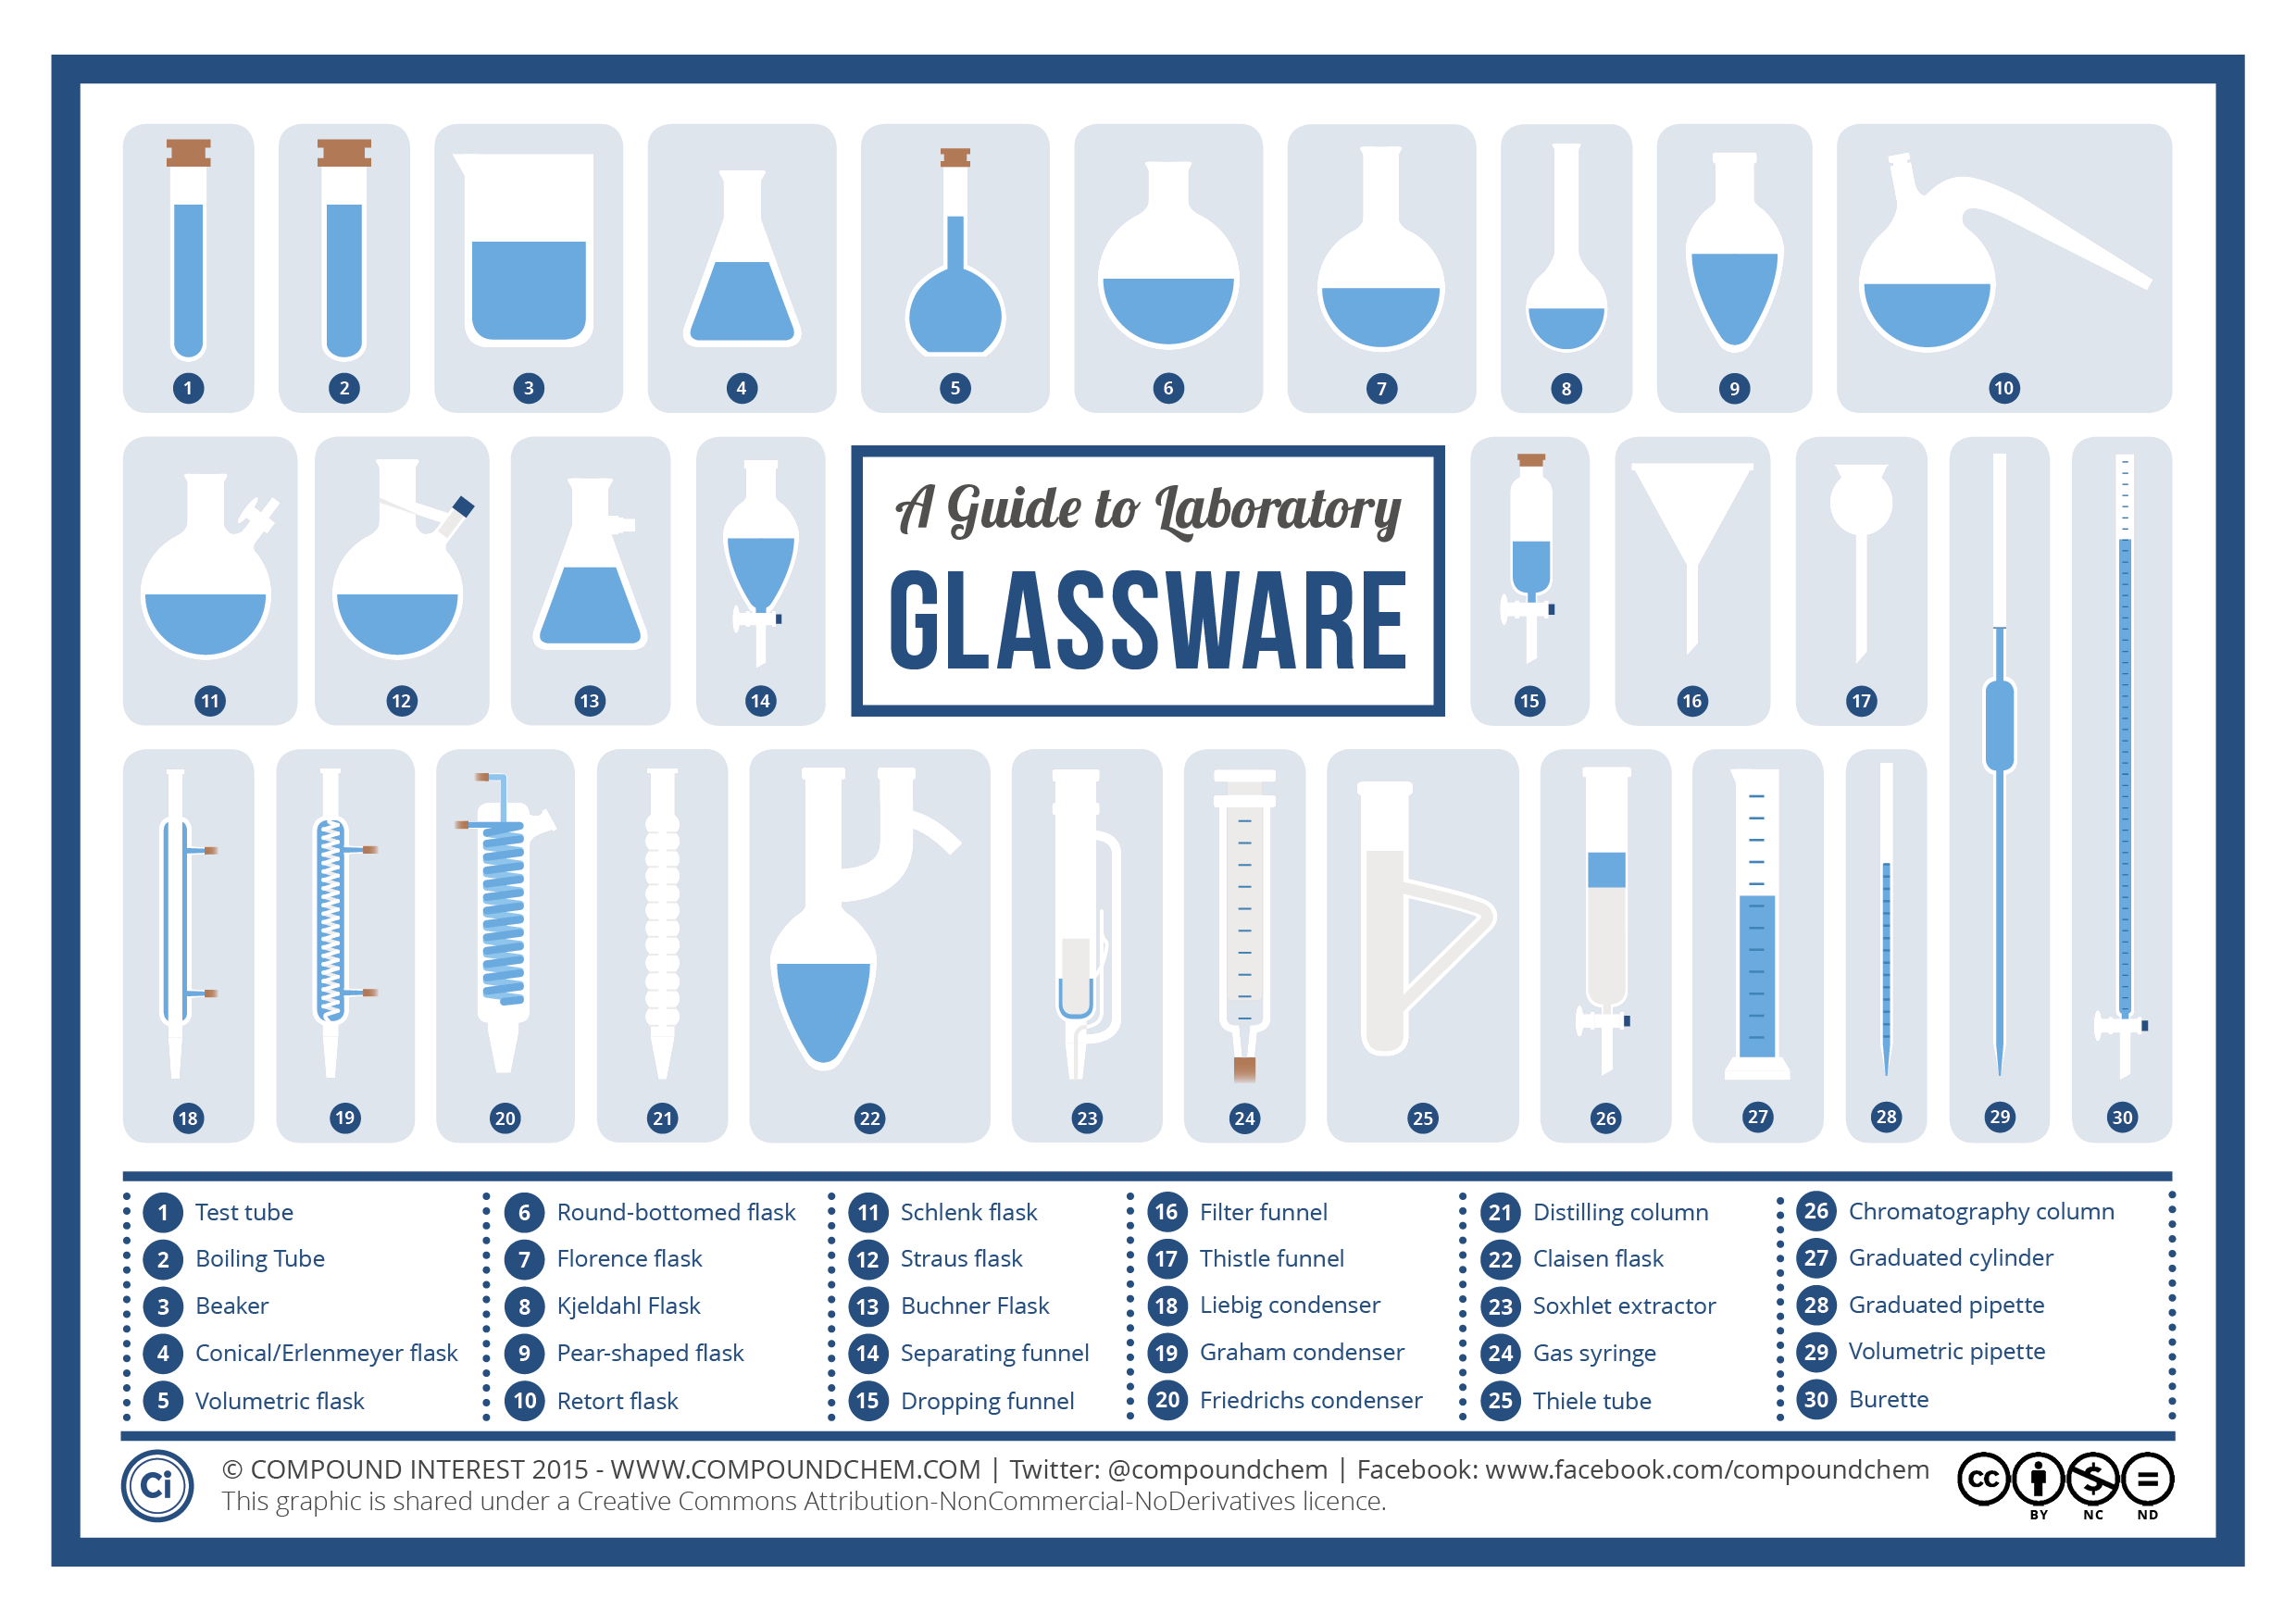 compound interest a visual guide to chemistry glassware a visual guide to chemistry glassware